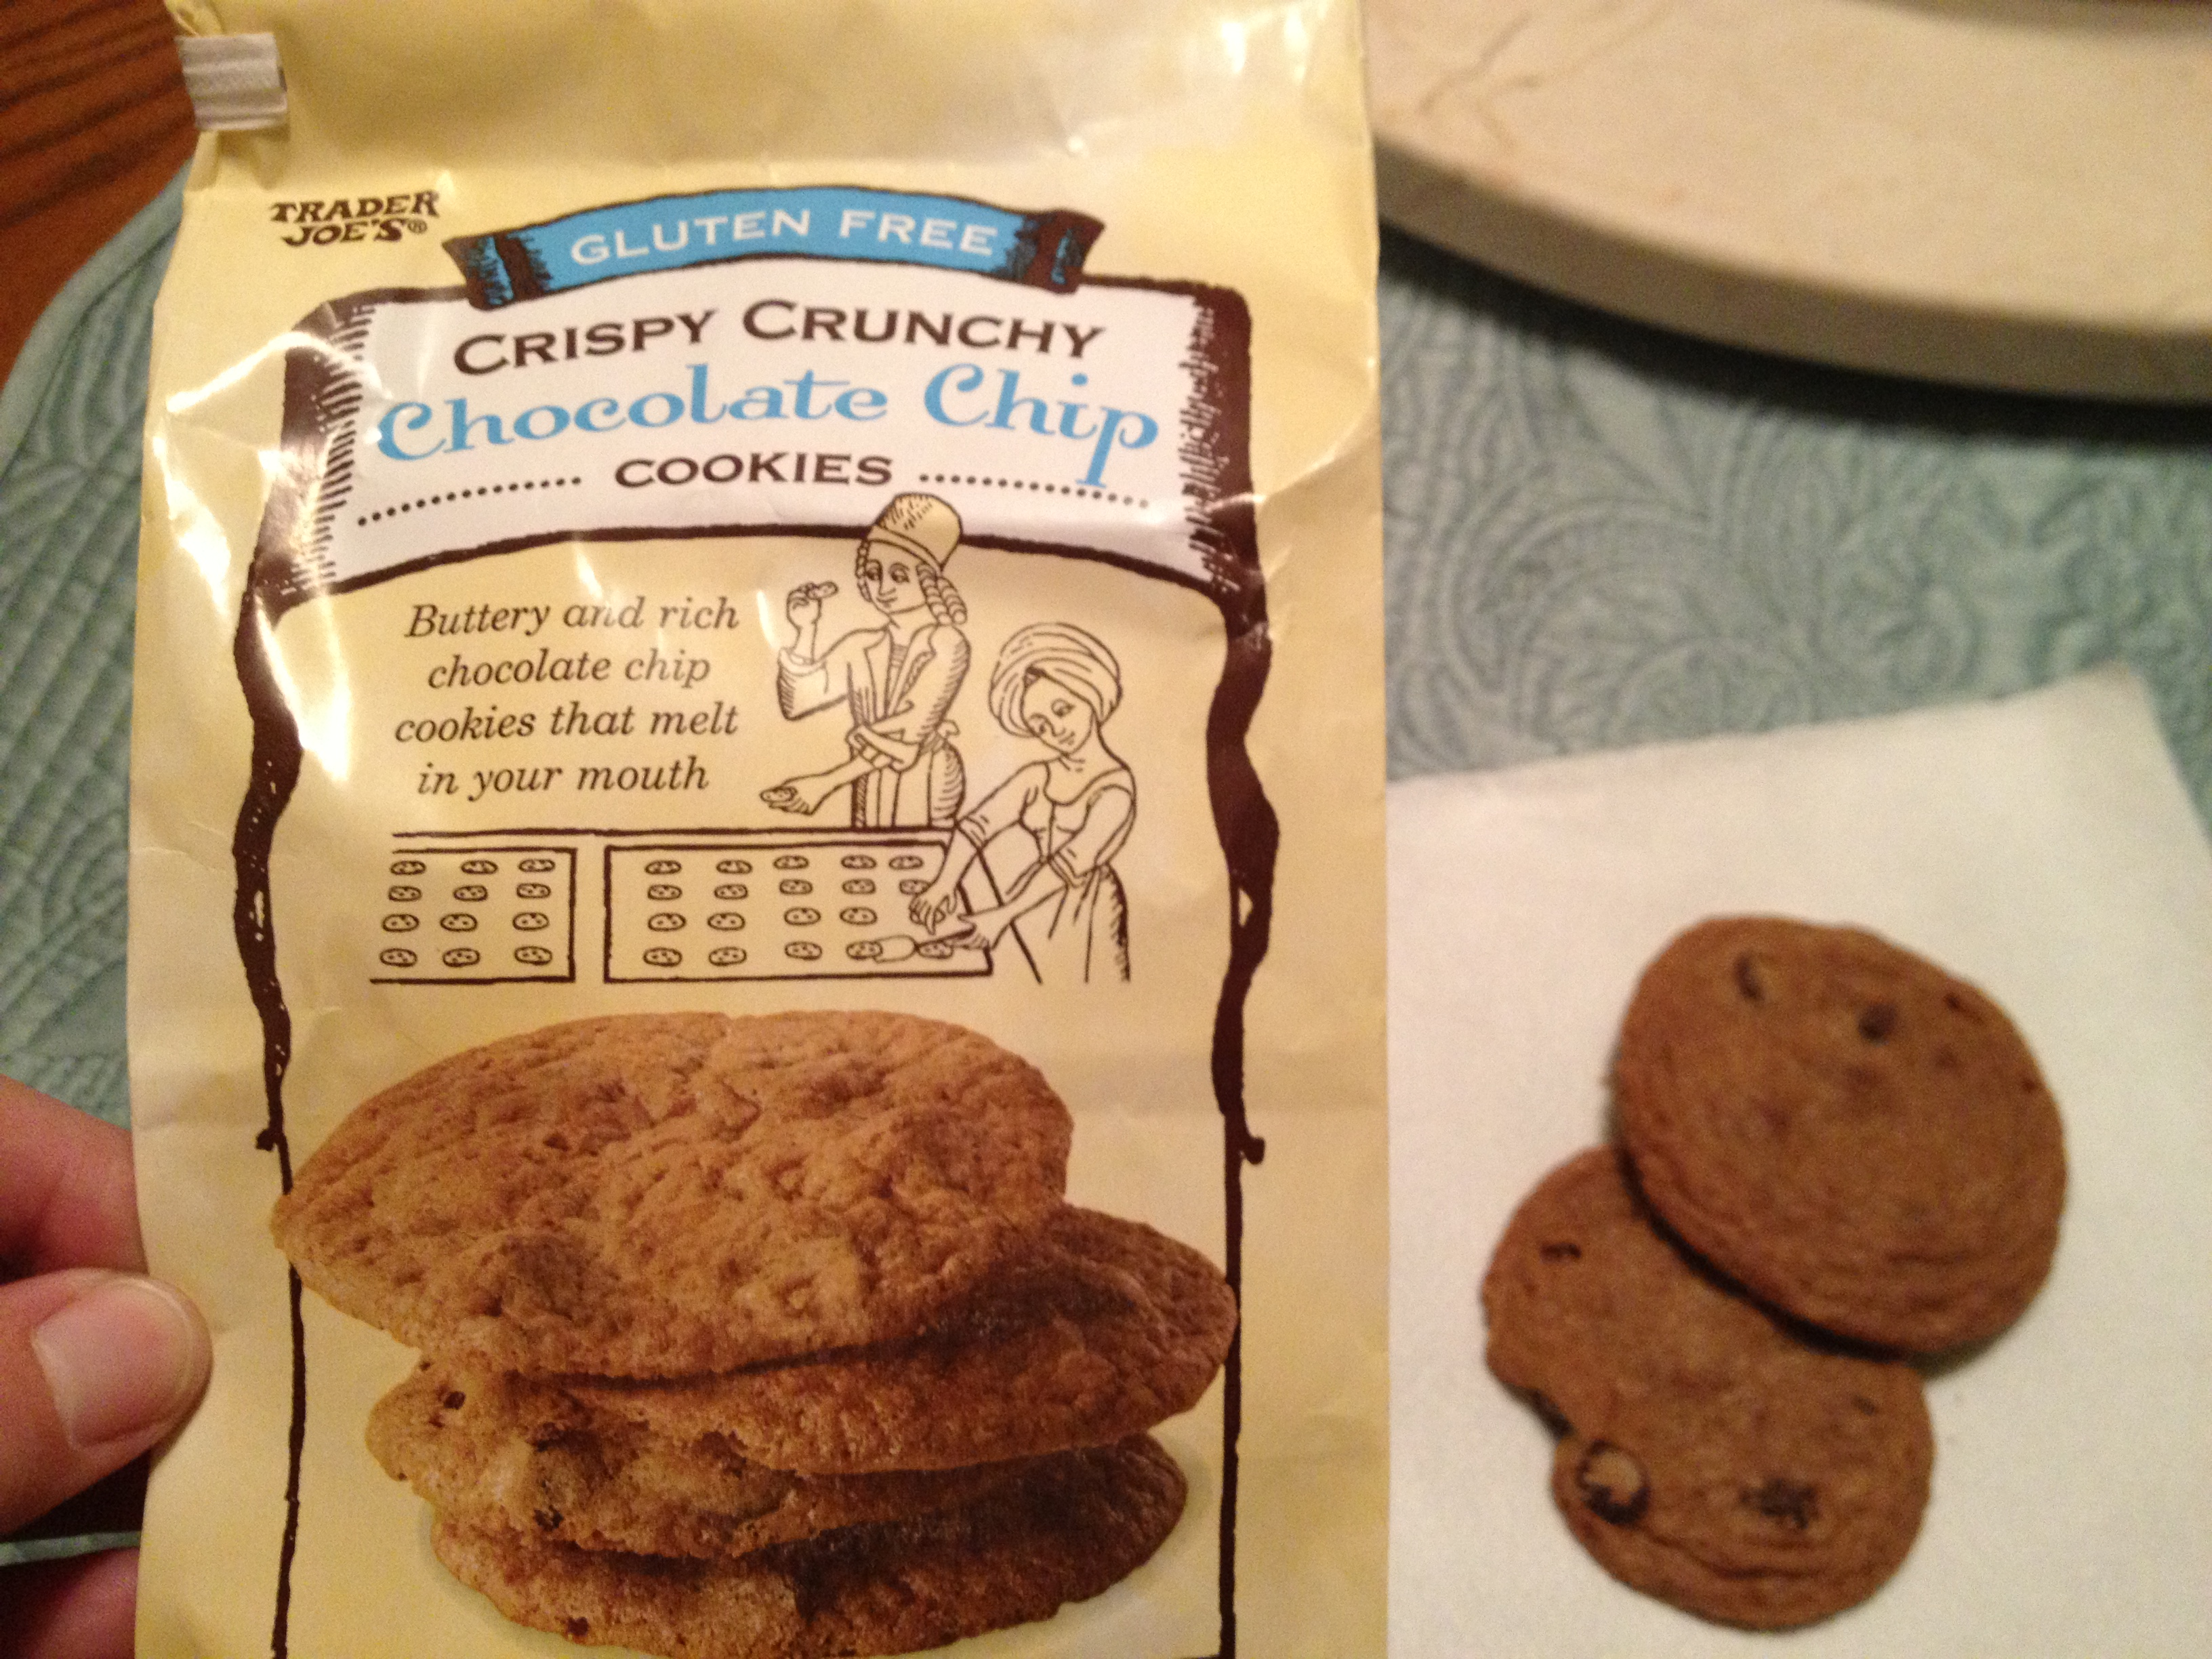 Trader Joe's Gluten-Free Chocolate Chip Cookies: A Product Review ...